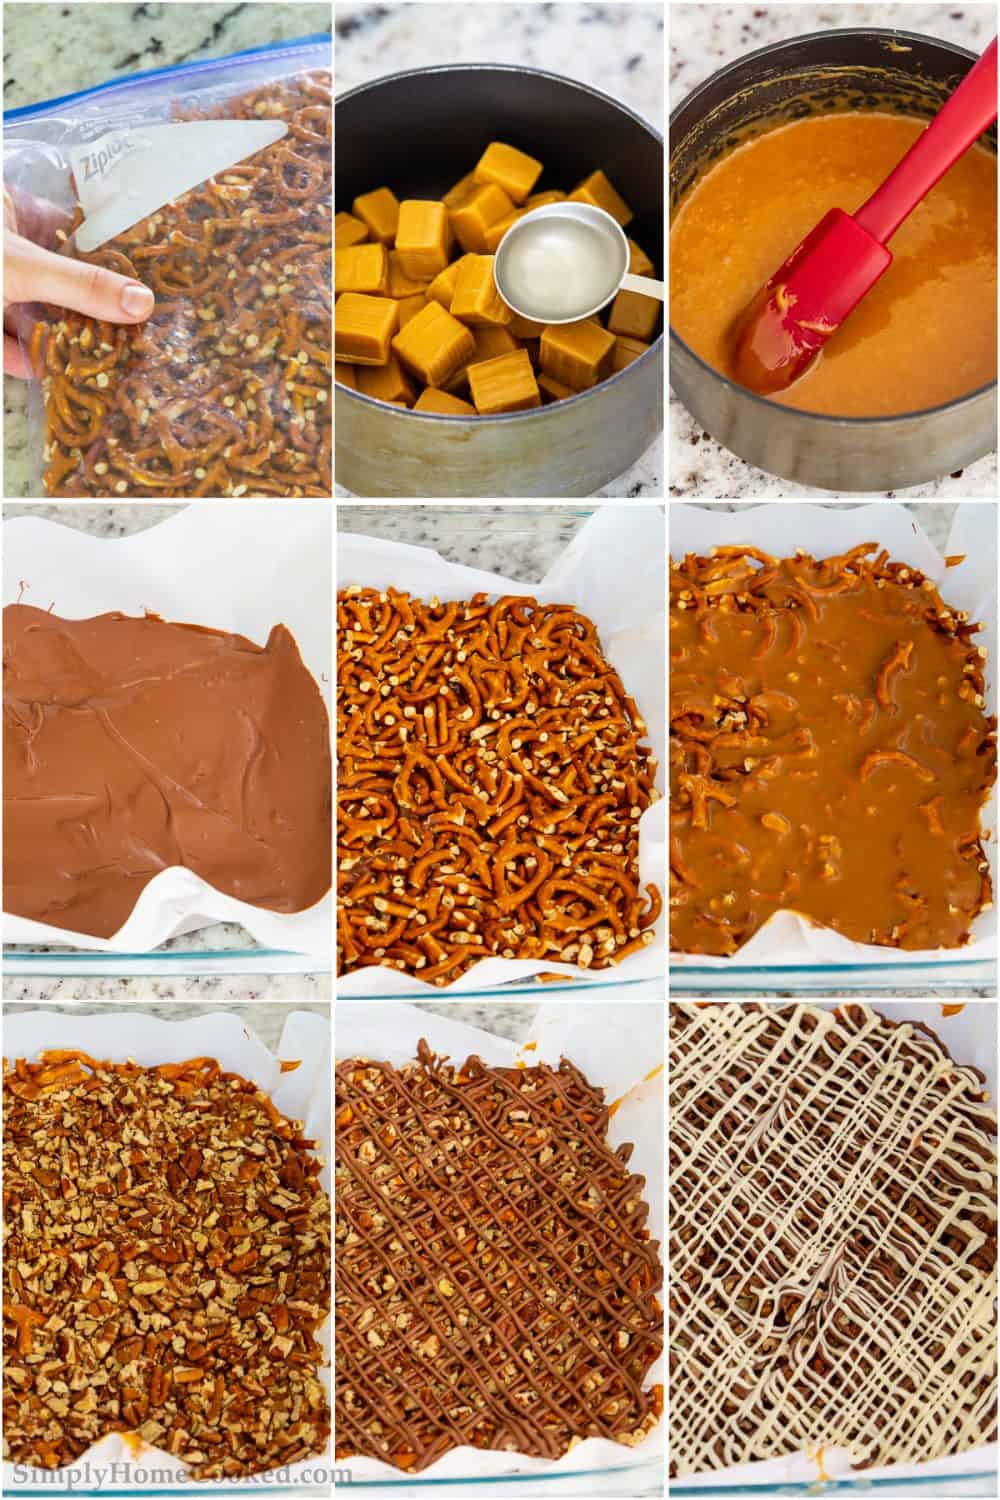 Follow our simple process of layering ingredients to build these delicious salty sweet chocolate caramel pretzels bars.